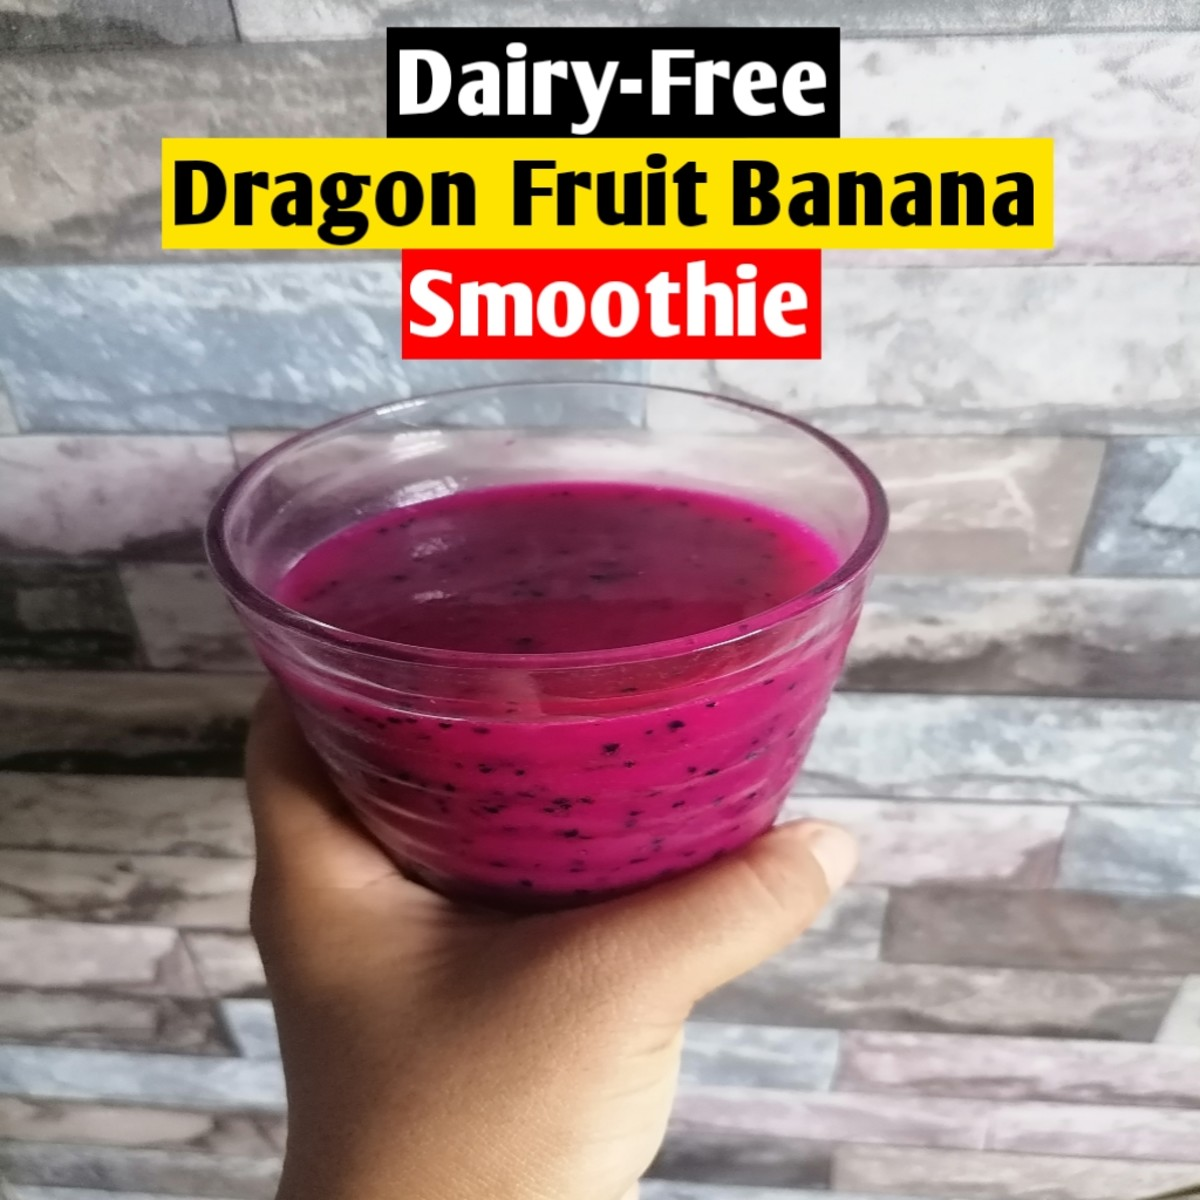 This dragon fruit banana smoothie doesn't contain any dairy